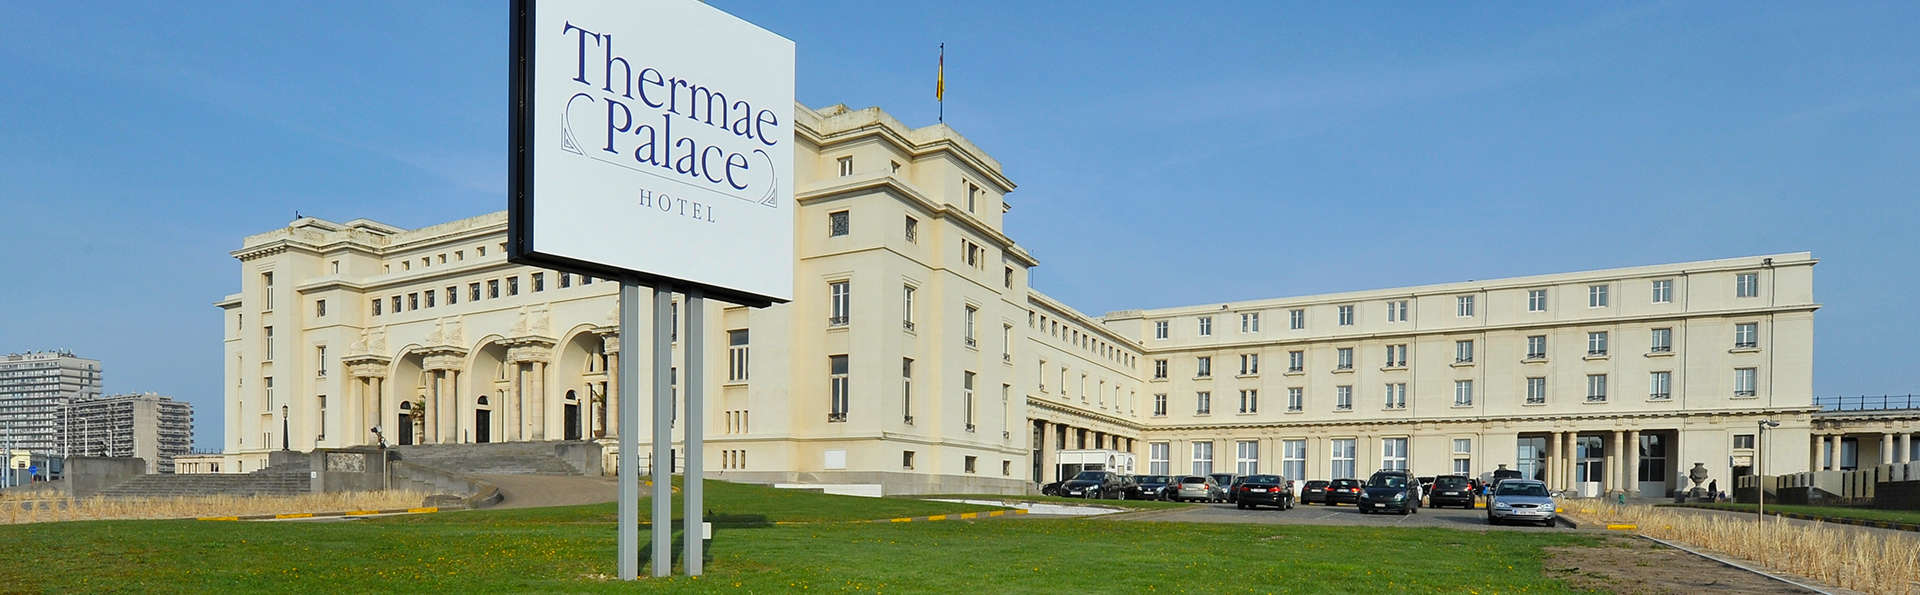 Thermae Palace - edit_front932.jpg